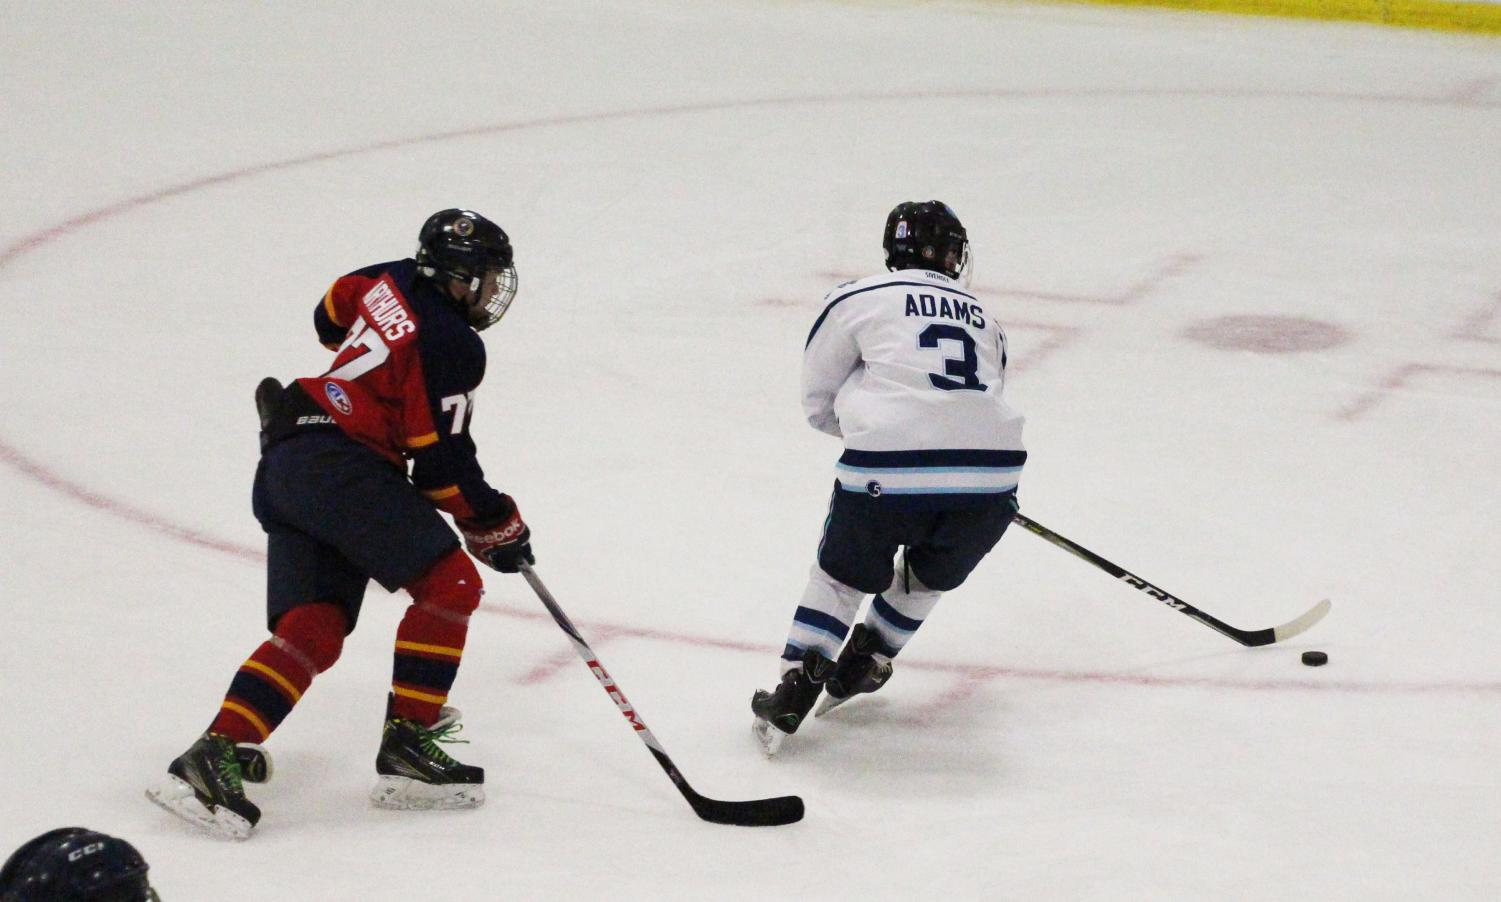 Junior Riley Adams winds up a backhand shot on goal.